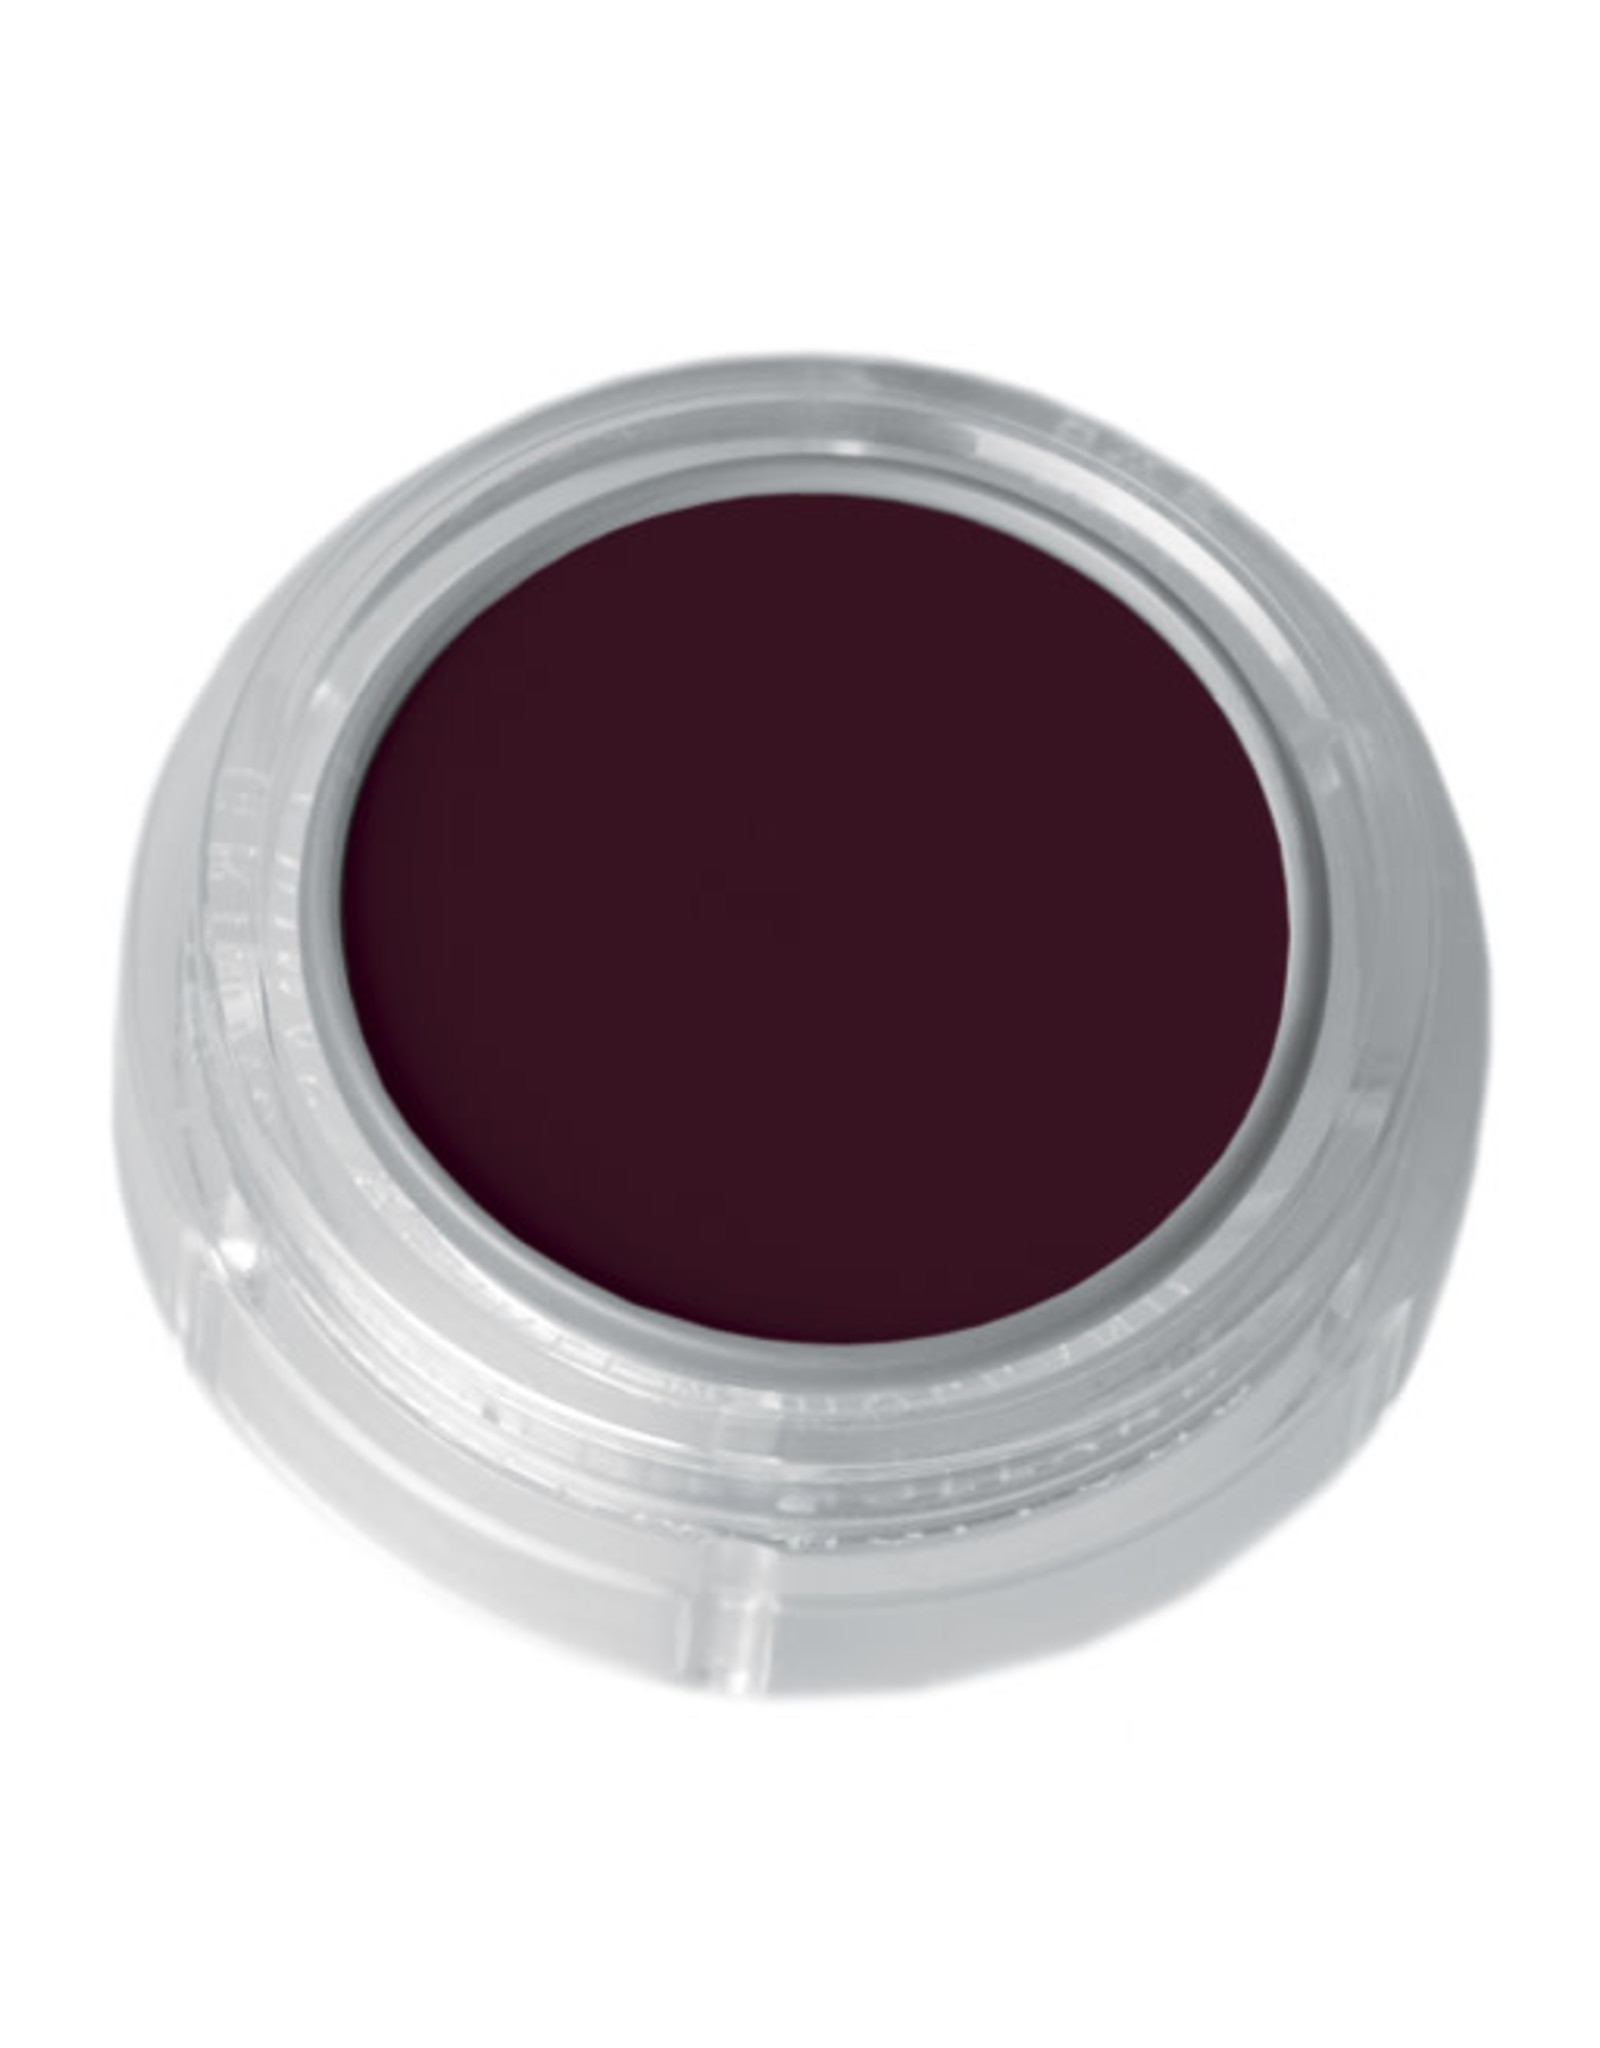 Grimas LIPSTICK PURE 5-21 Donker bordeauxrood A1 (2,5 ml)